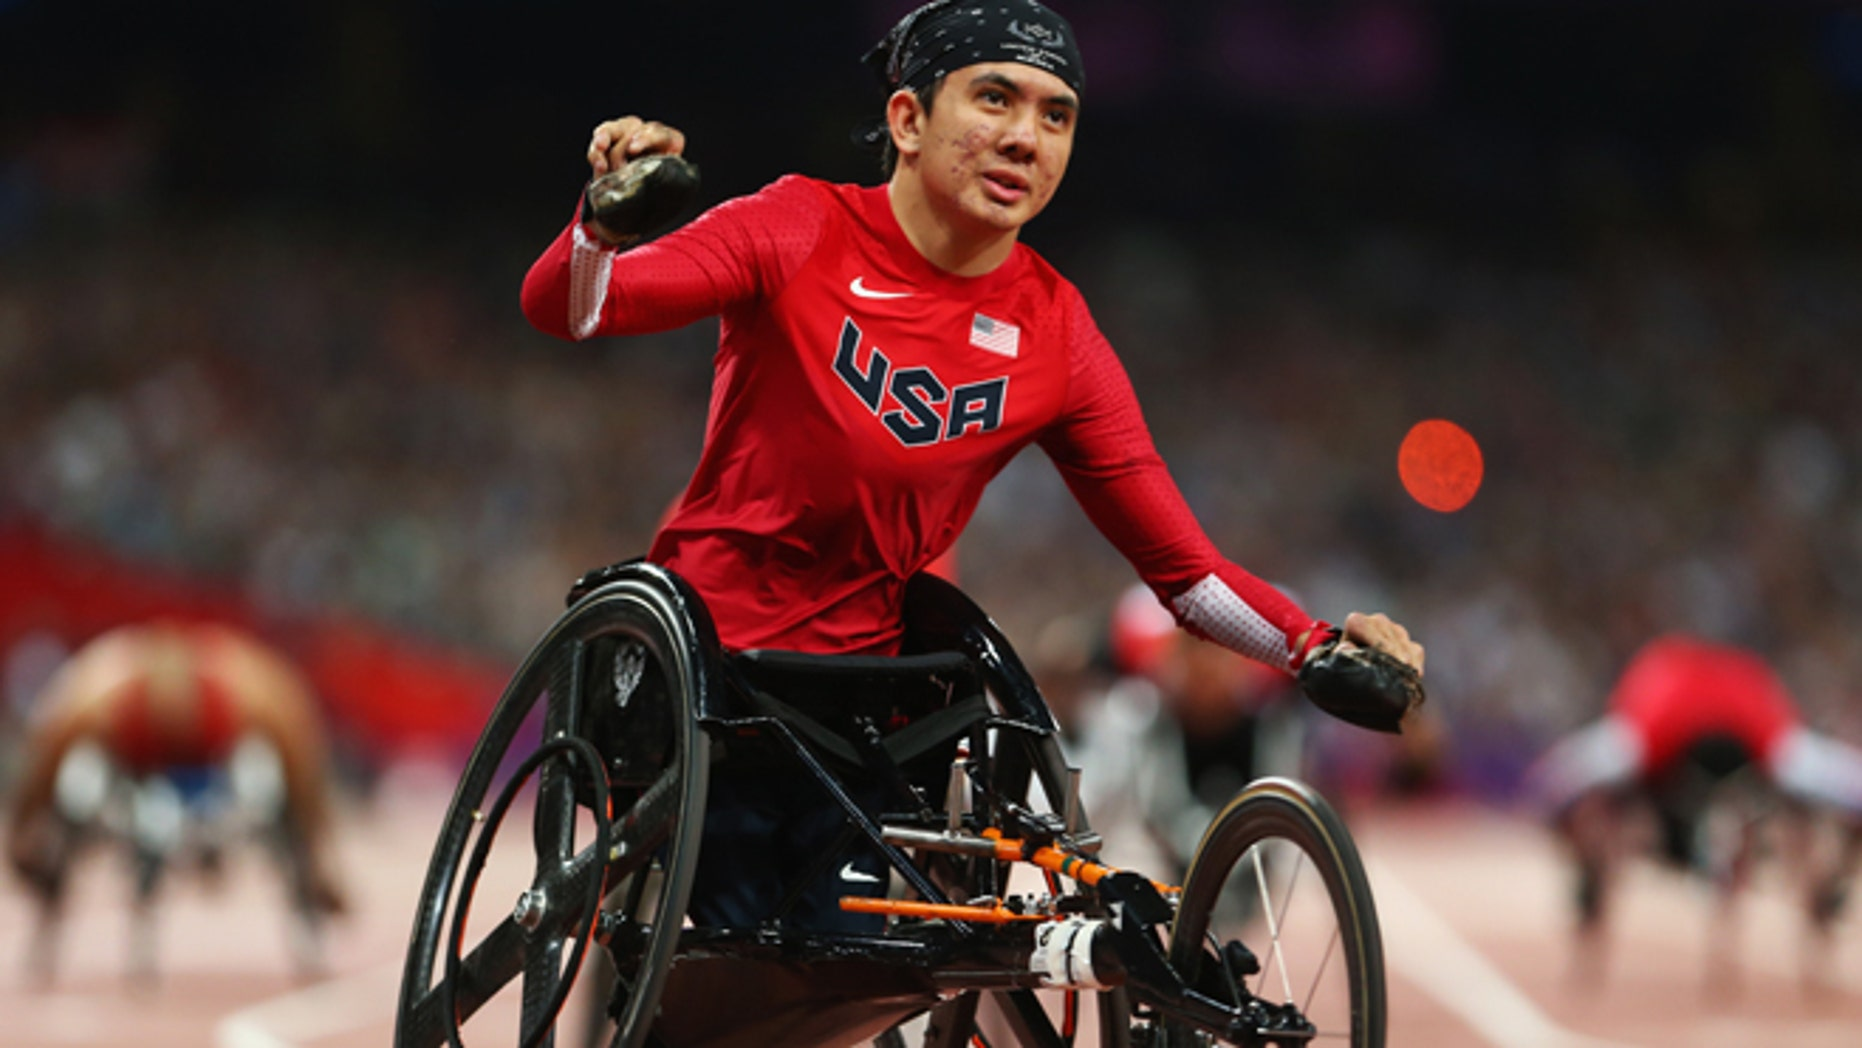 LONDON, ENGLAND - SEPTEMBER 08:  Raymond Martin of the United States celebrates as he wins gold in the Men's 200m T52 Final on day 10 of the London 2012 Paralympic Games at Olympic Stadium on September 8, 2012 in London, England.  (Photo by Michael Steele/Getty Images)